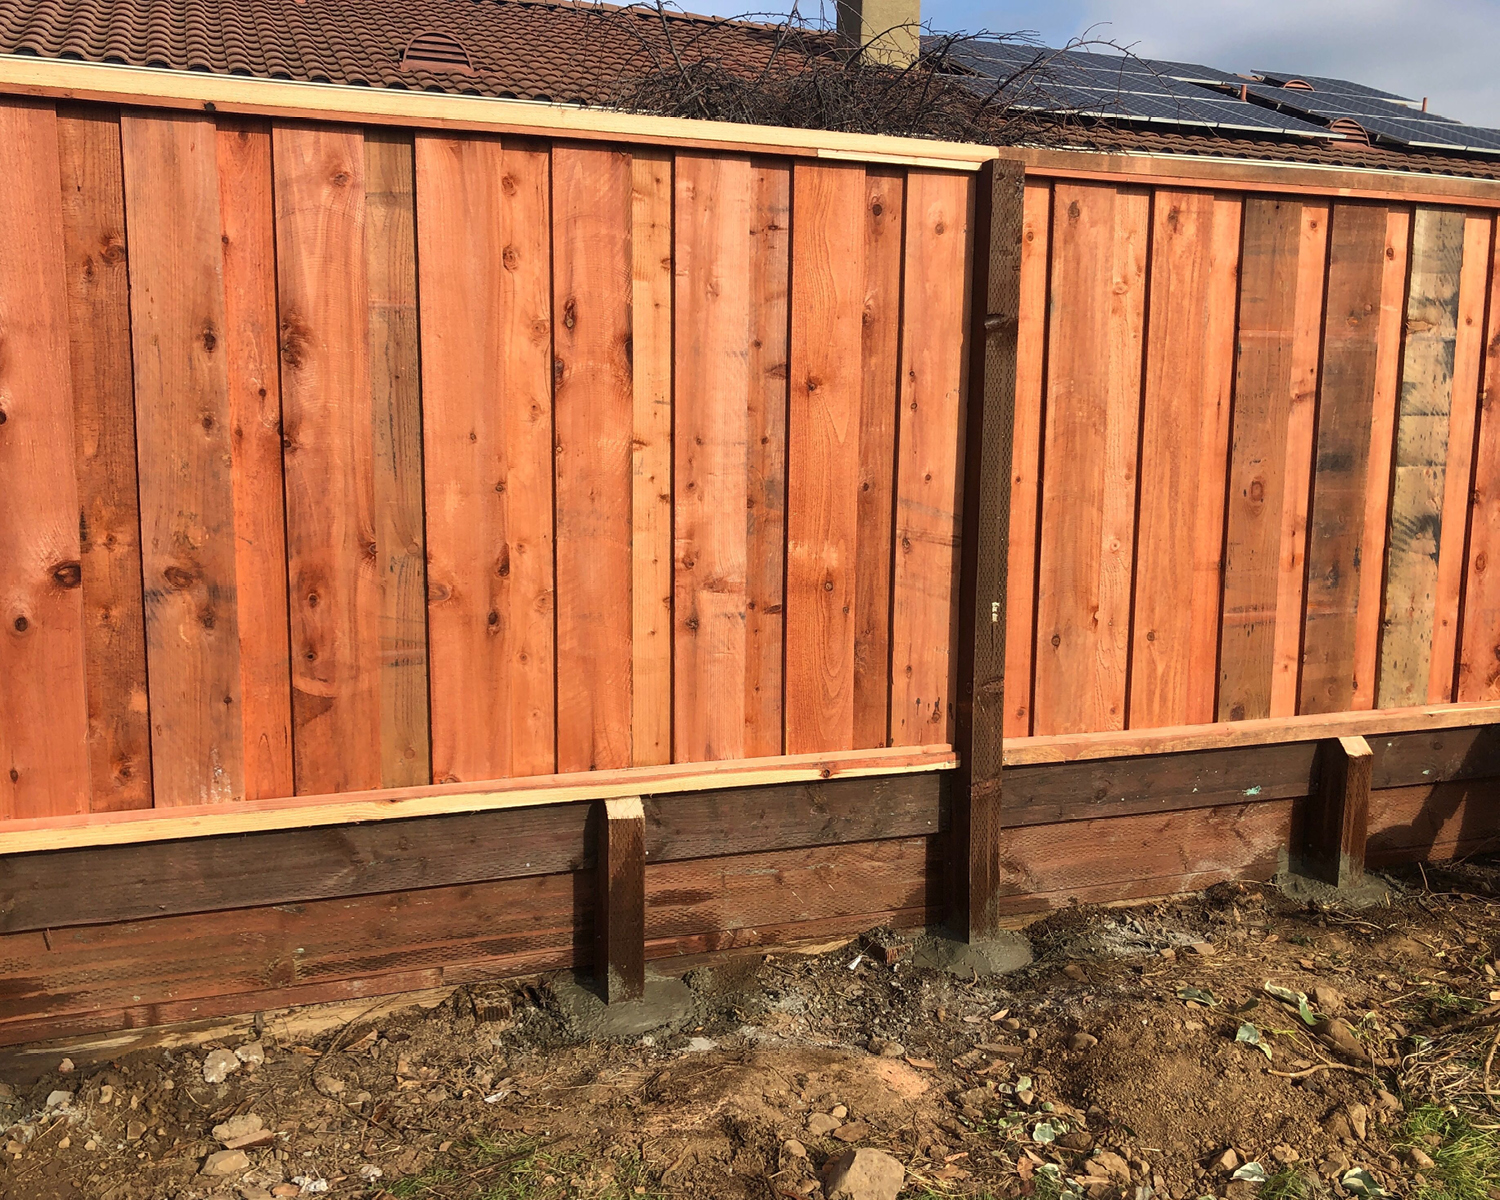 morgan-hill-ca-picture-frame-with-1-x1-s-top-and-bottom-board-on-board-with-an-integrated-1-retaining-wall